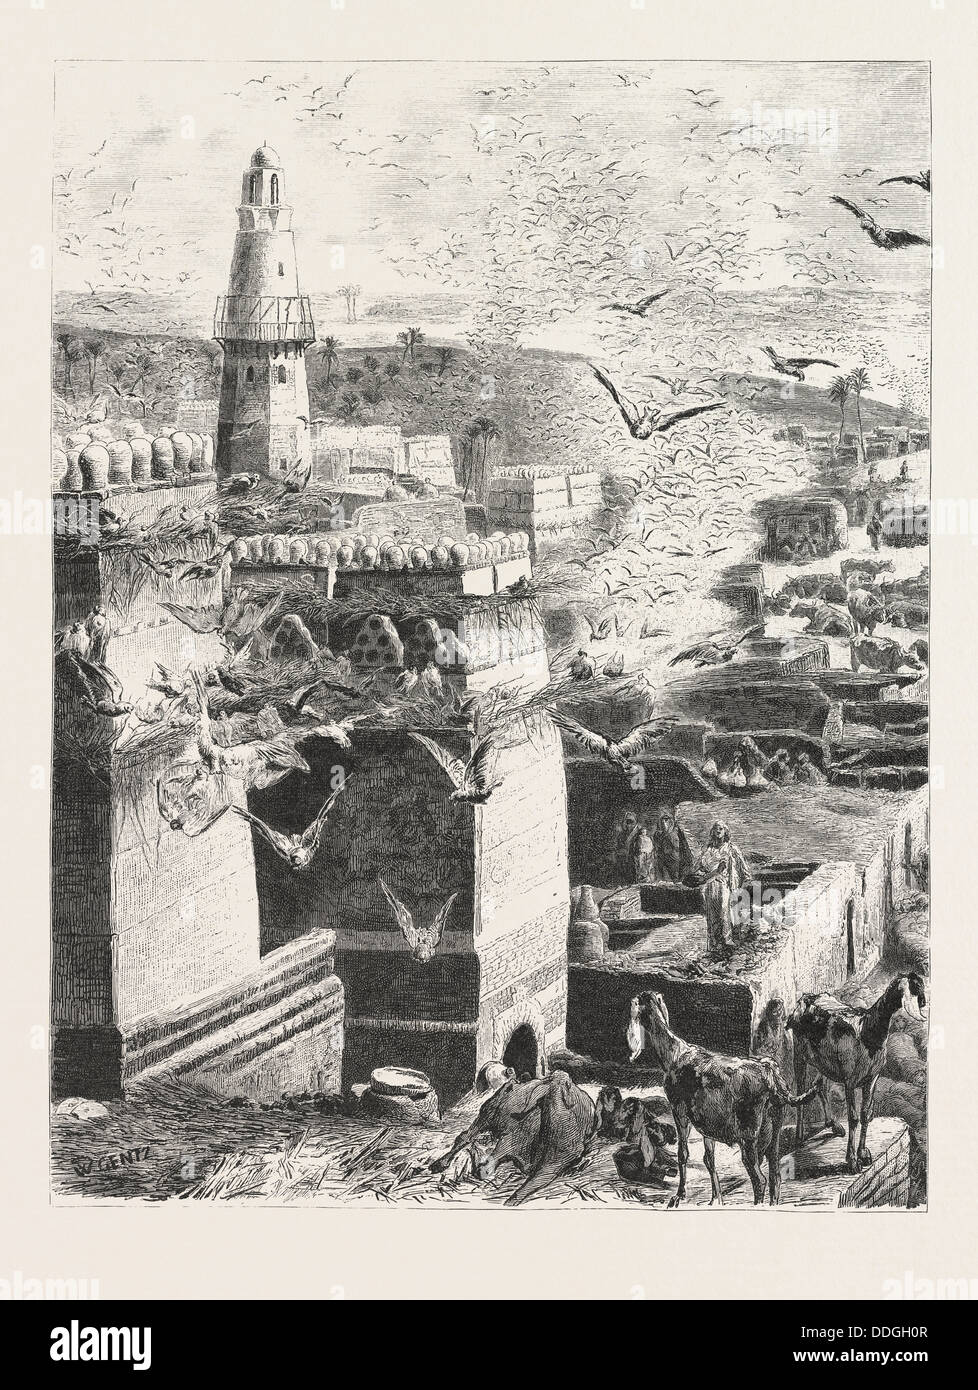 VILLAGE IN UPPER EGYPT. Egypt, engraving 1879 - Stock Image